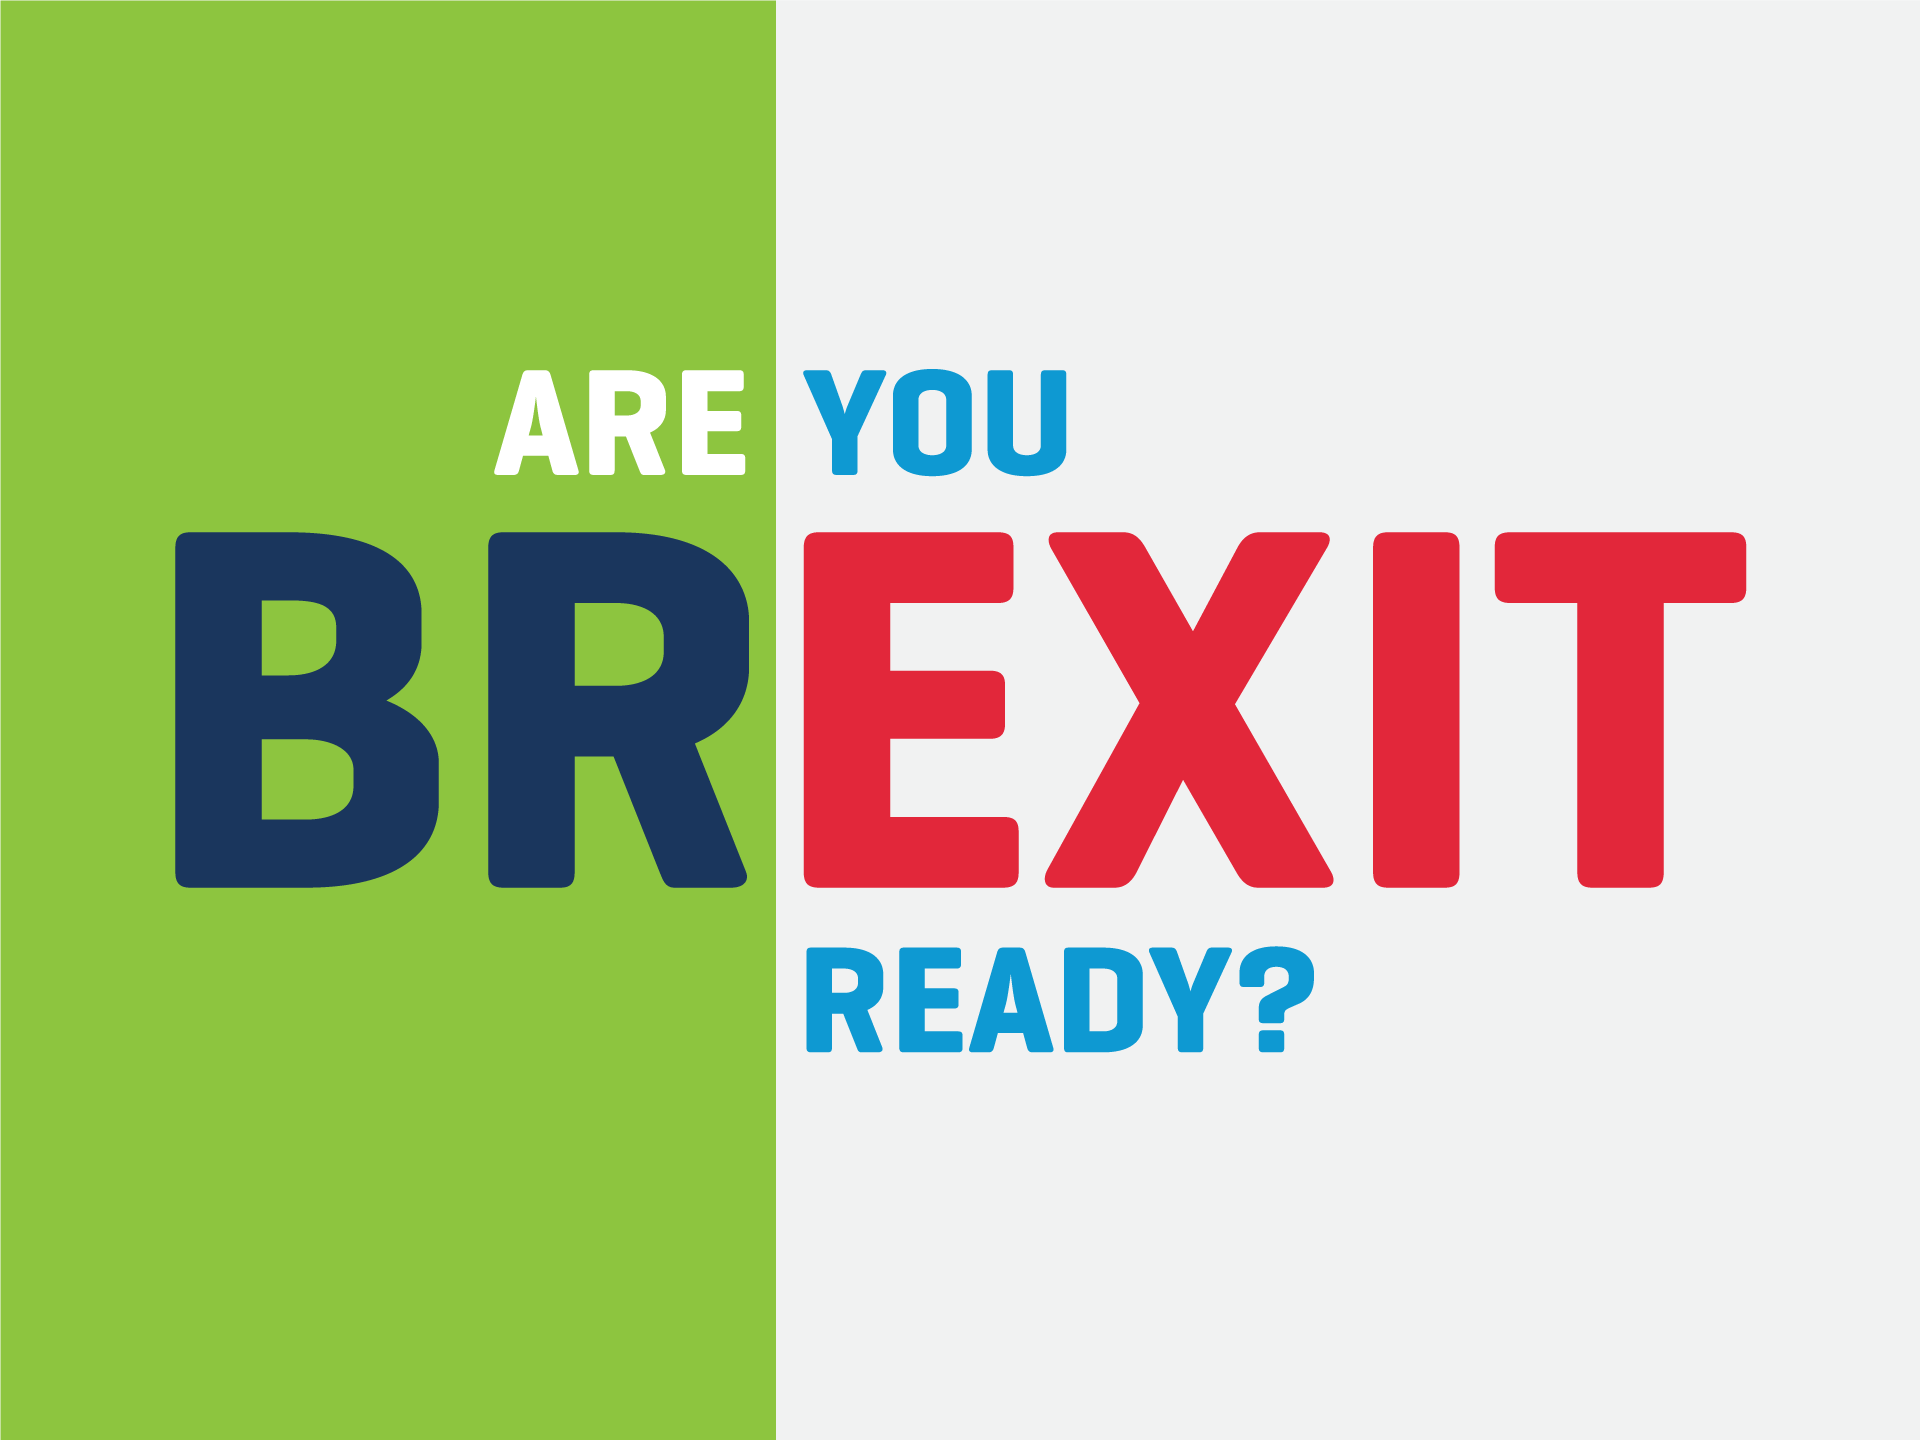 Are You Brexit Ready LEO Donegal Event Graphic Design